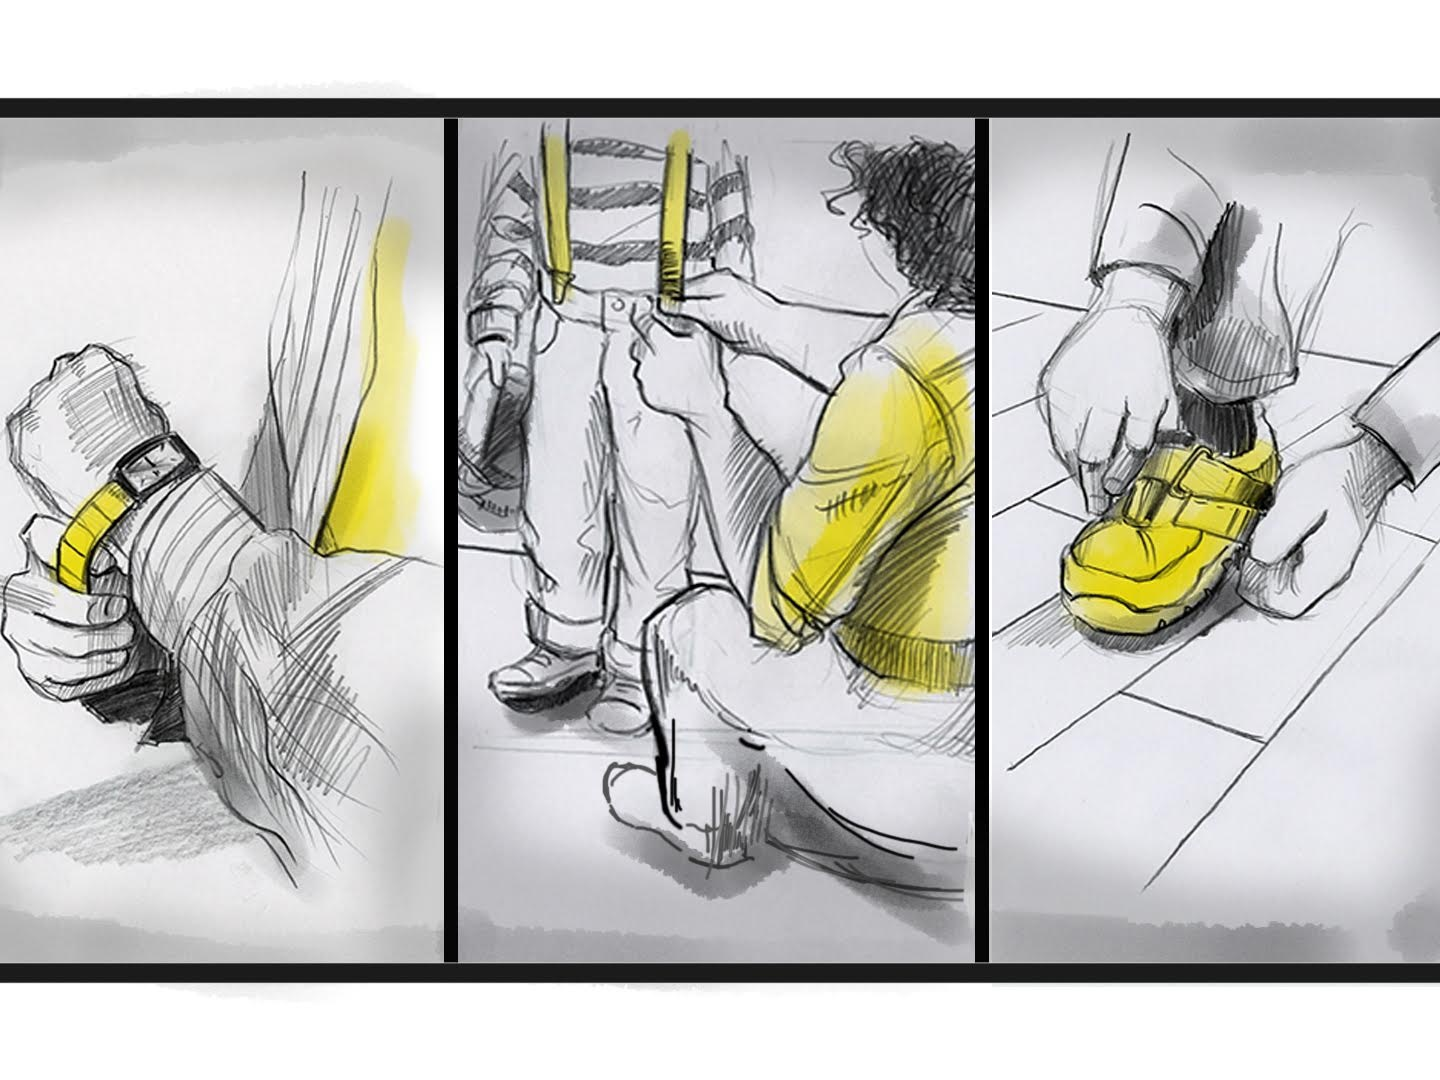 Storyboard from motion graphic sketch illustrations drawing illustration dinksy graphic art storyboard motion graphic